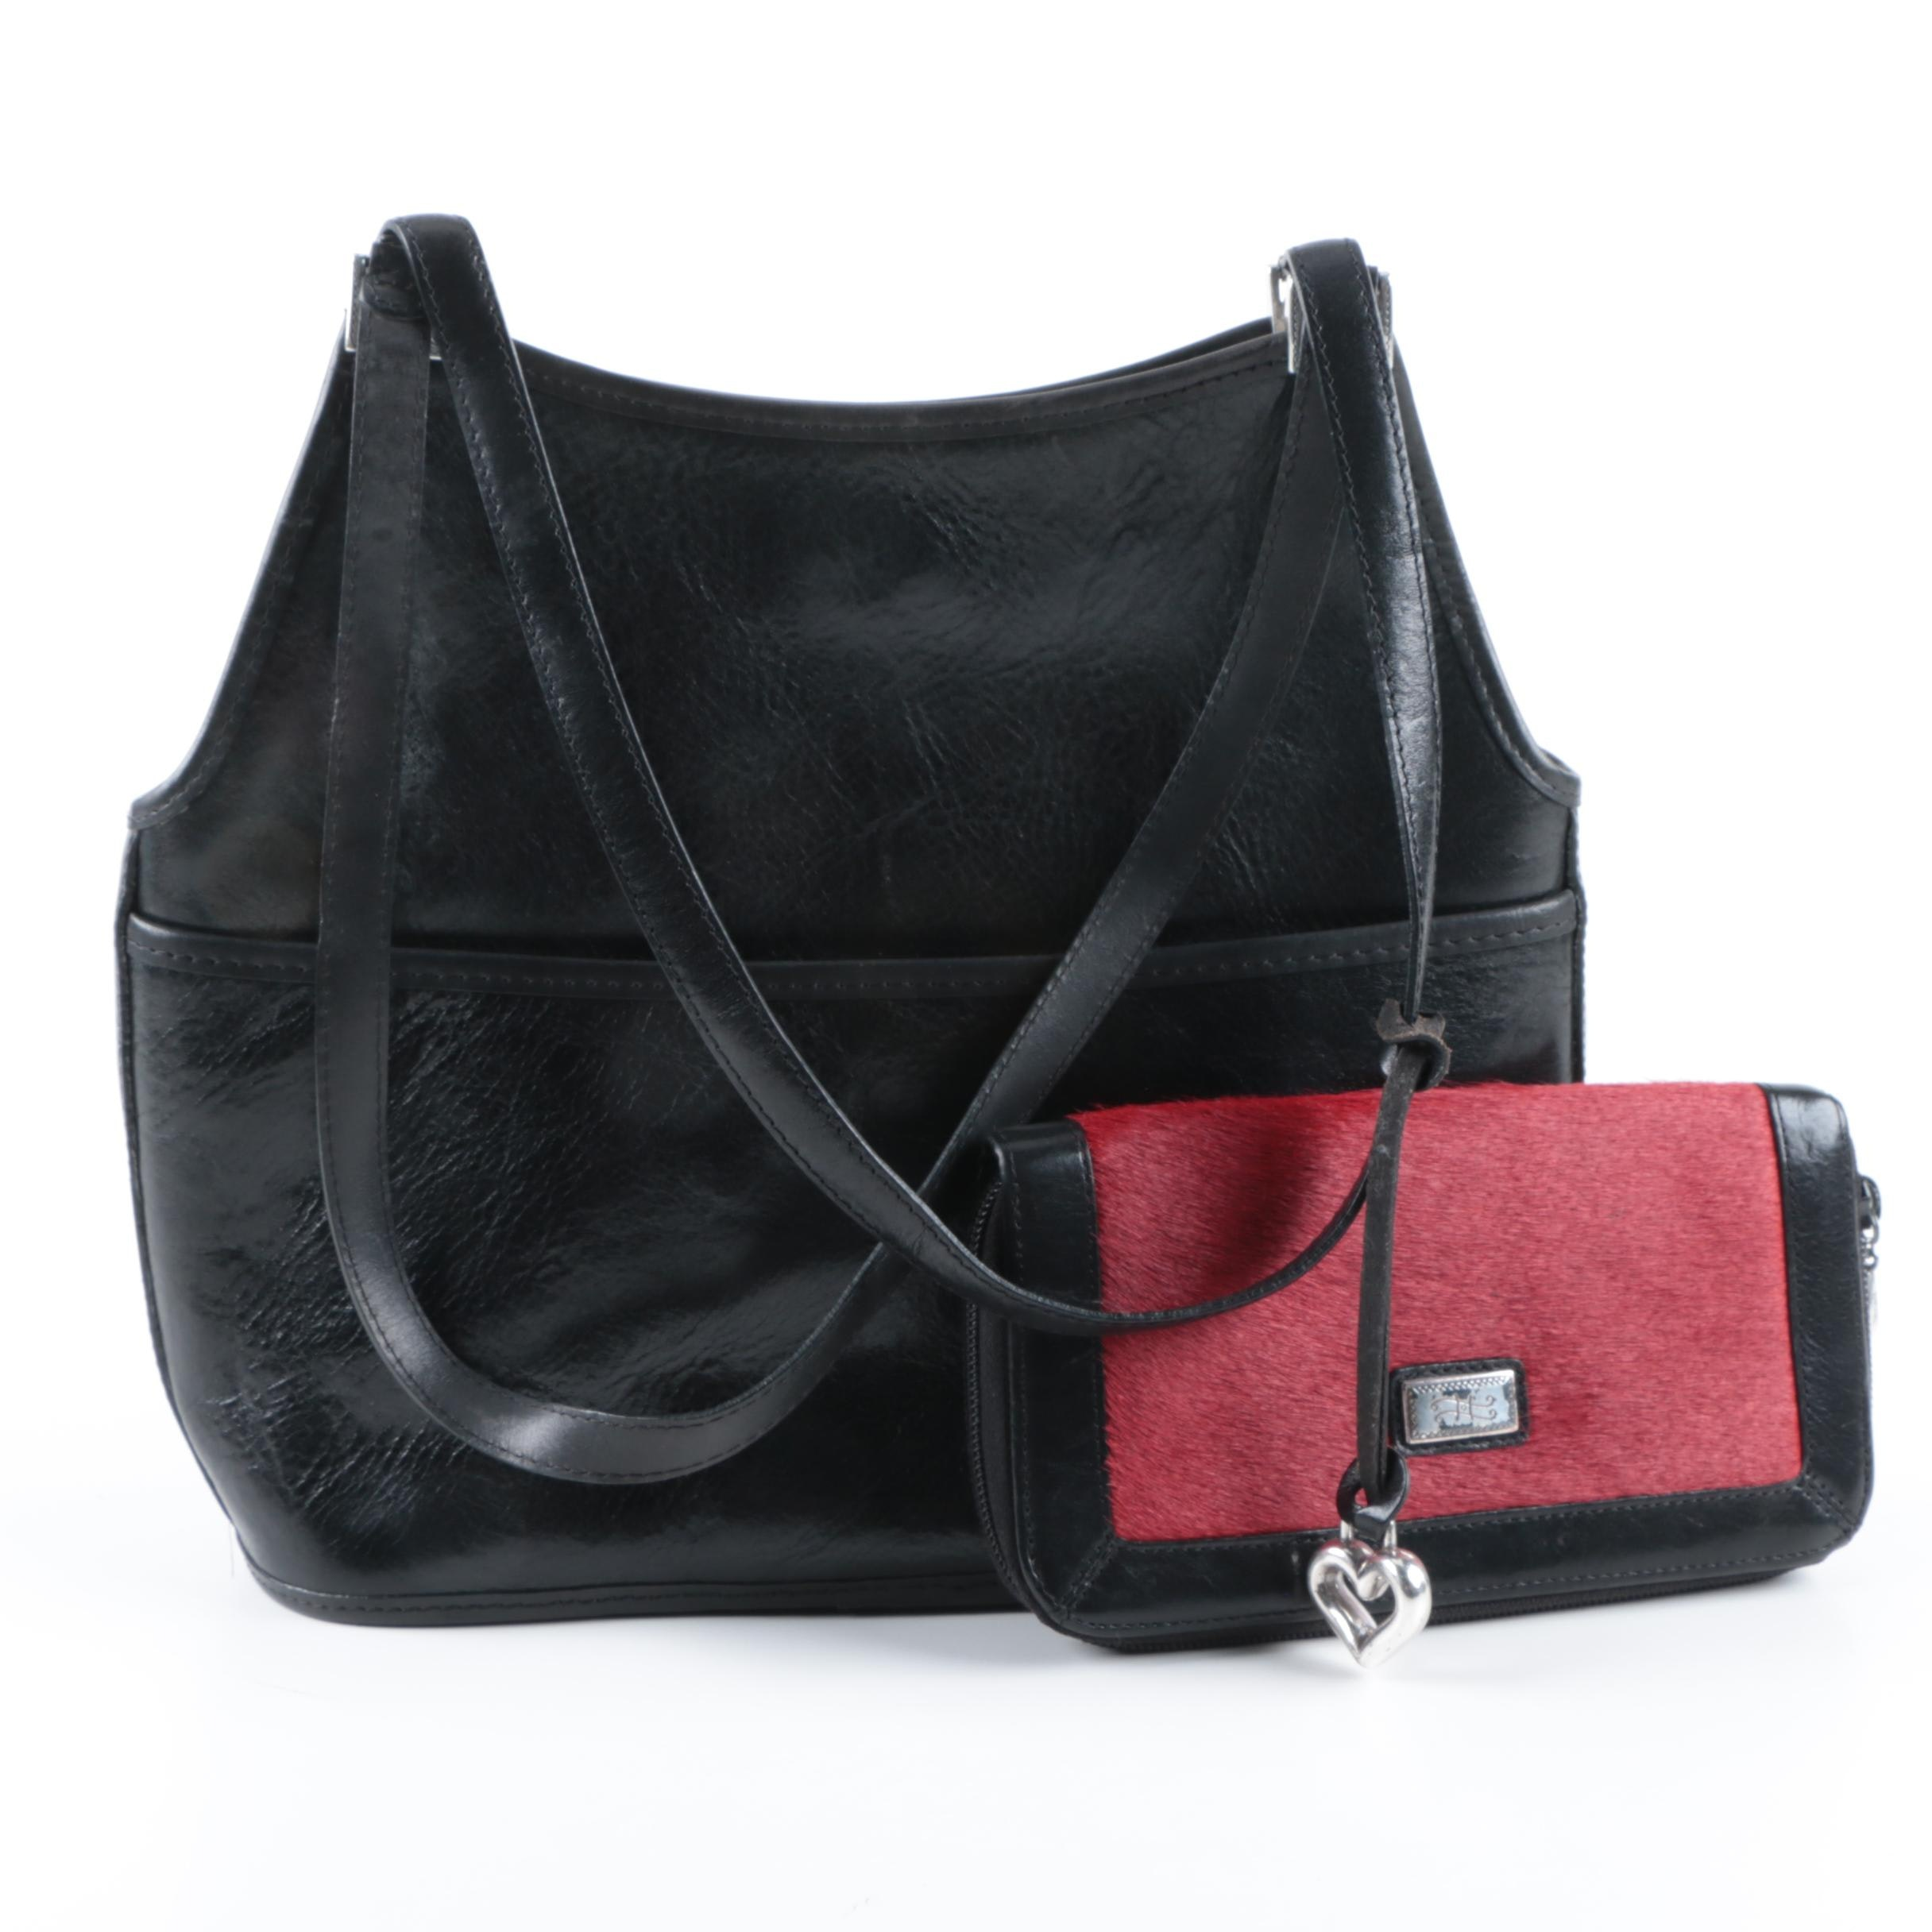 Brighton Cowhide Handbag and Wallet